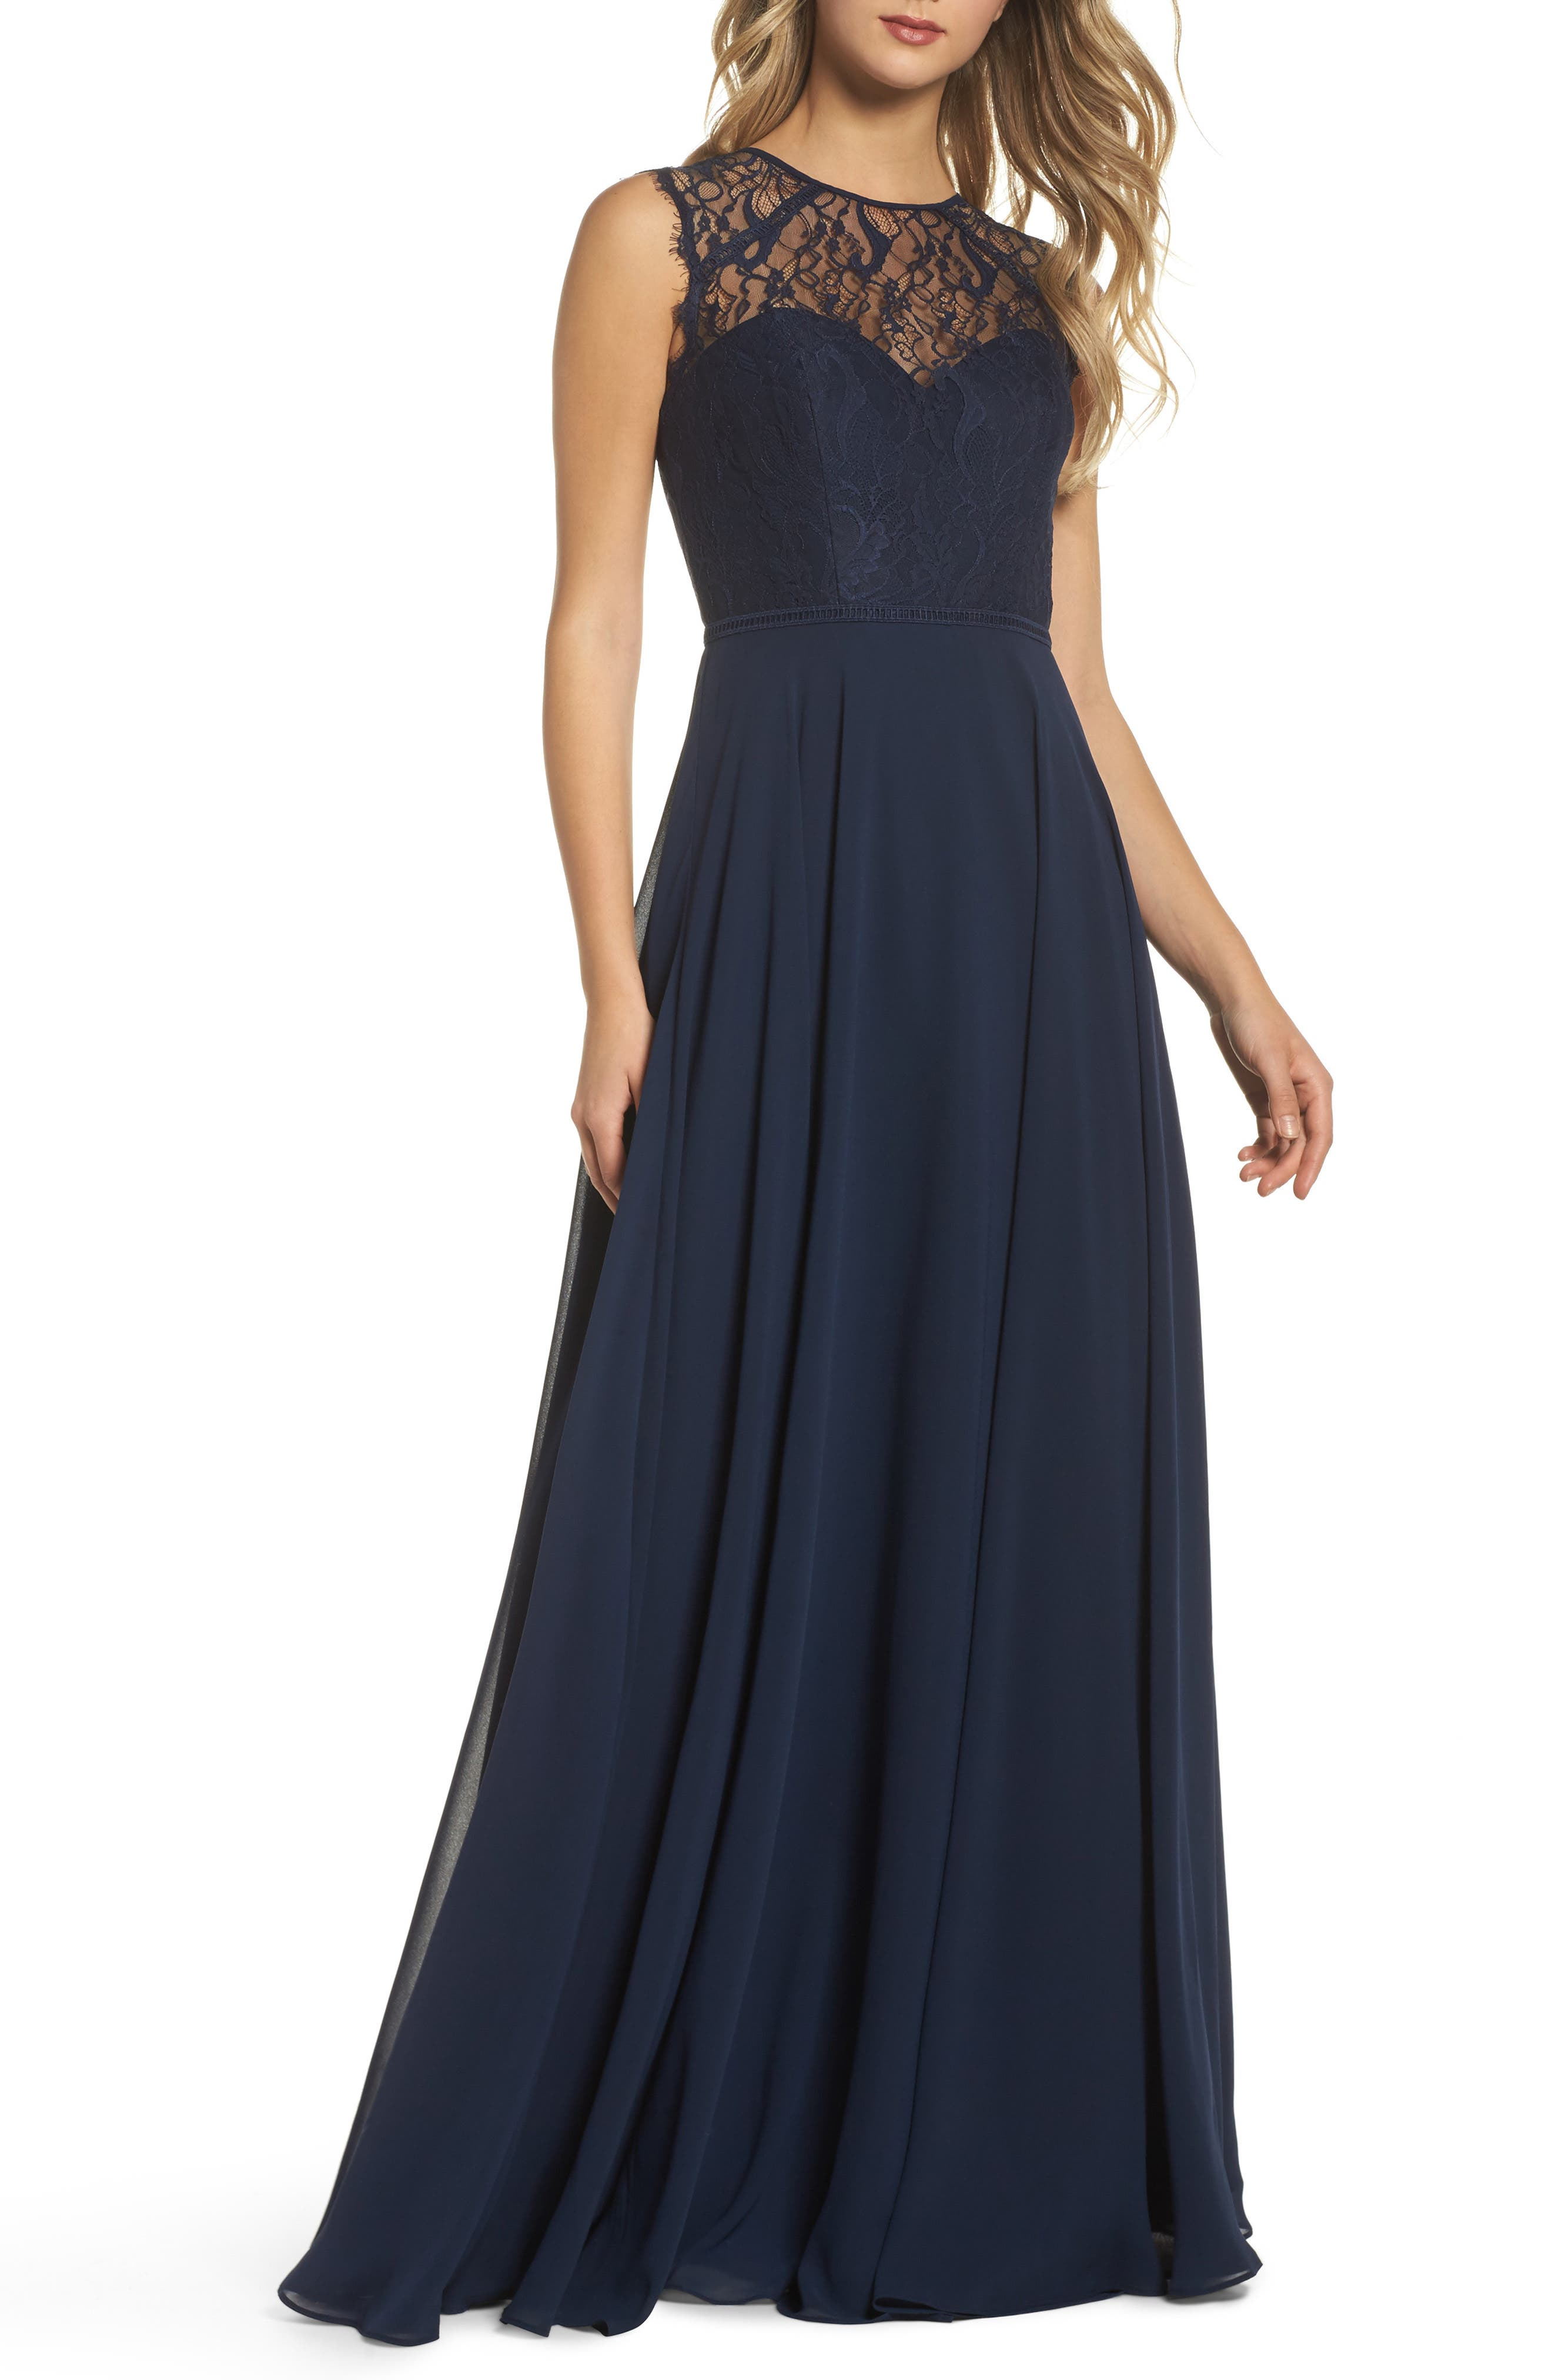 HAYLEY PAIGE OCCASIONS Lace & Chiffon Gown, Main, color, NAVY